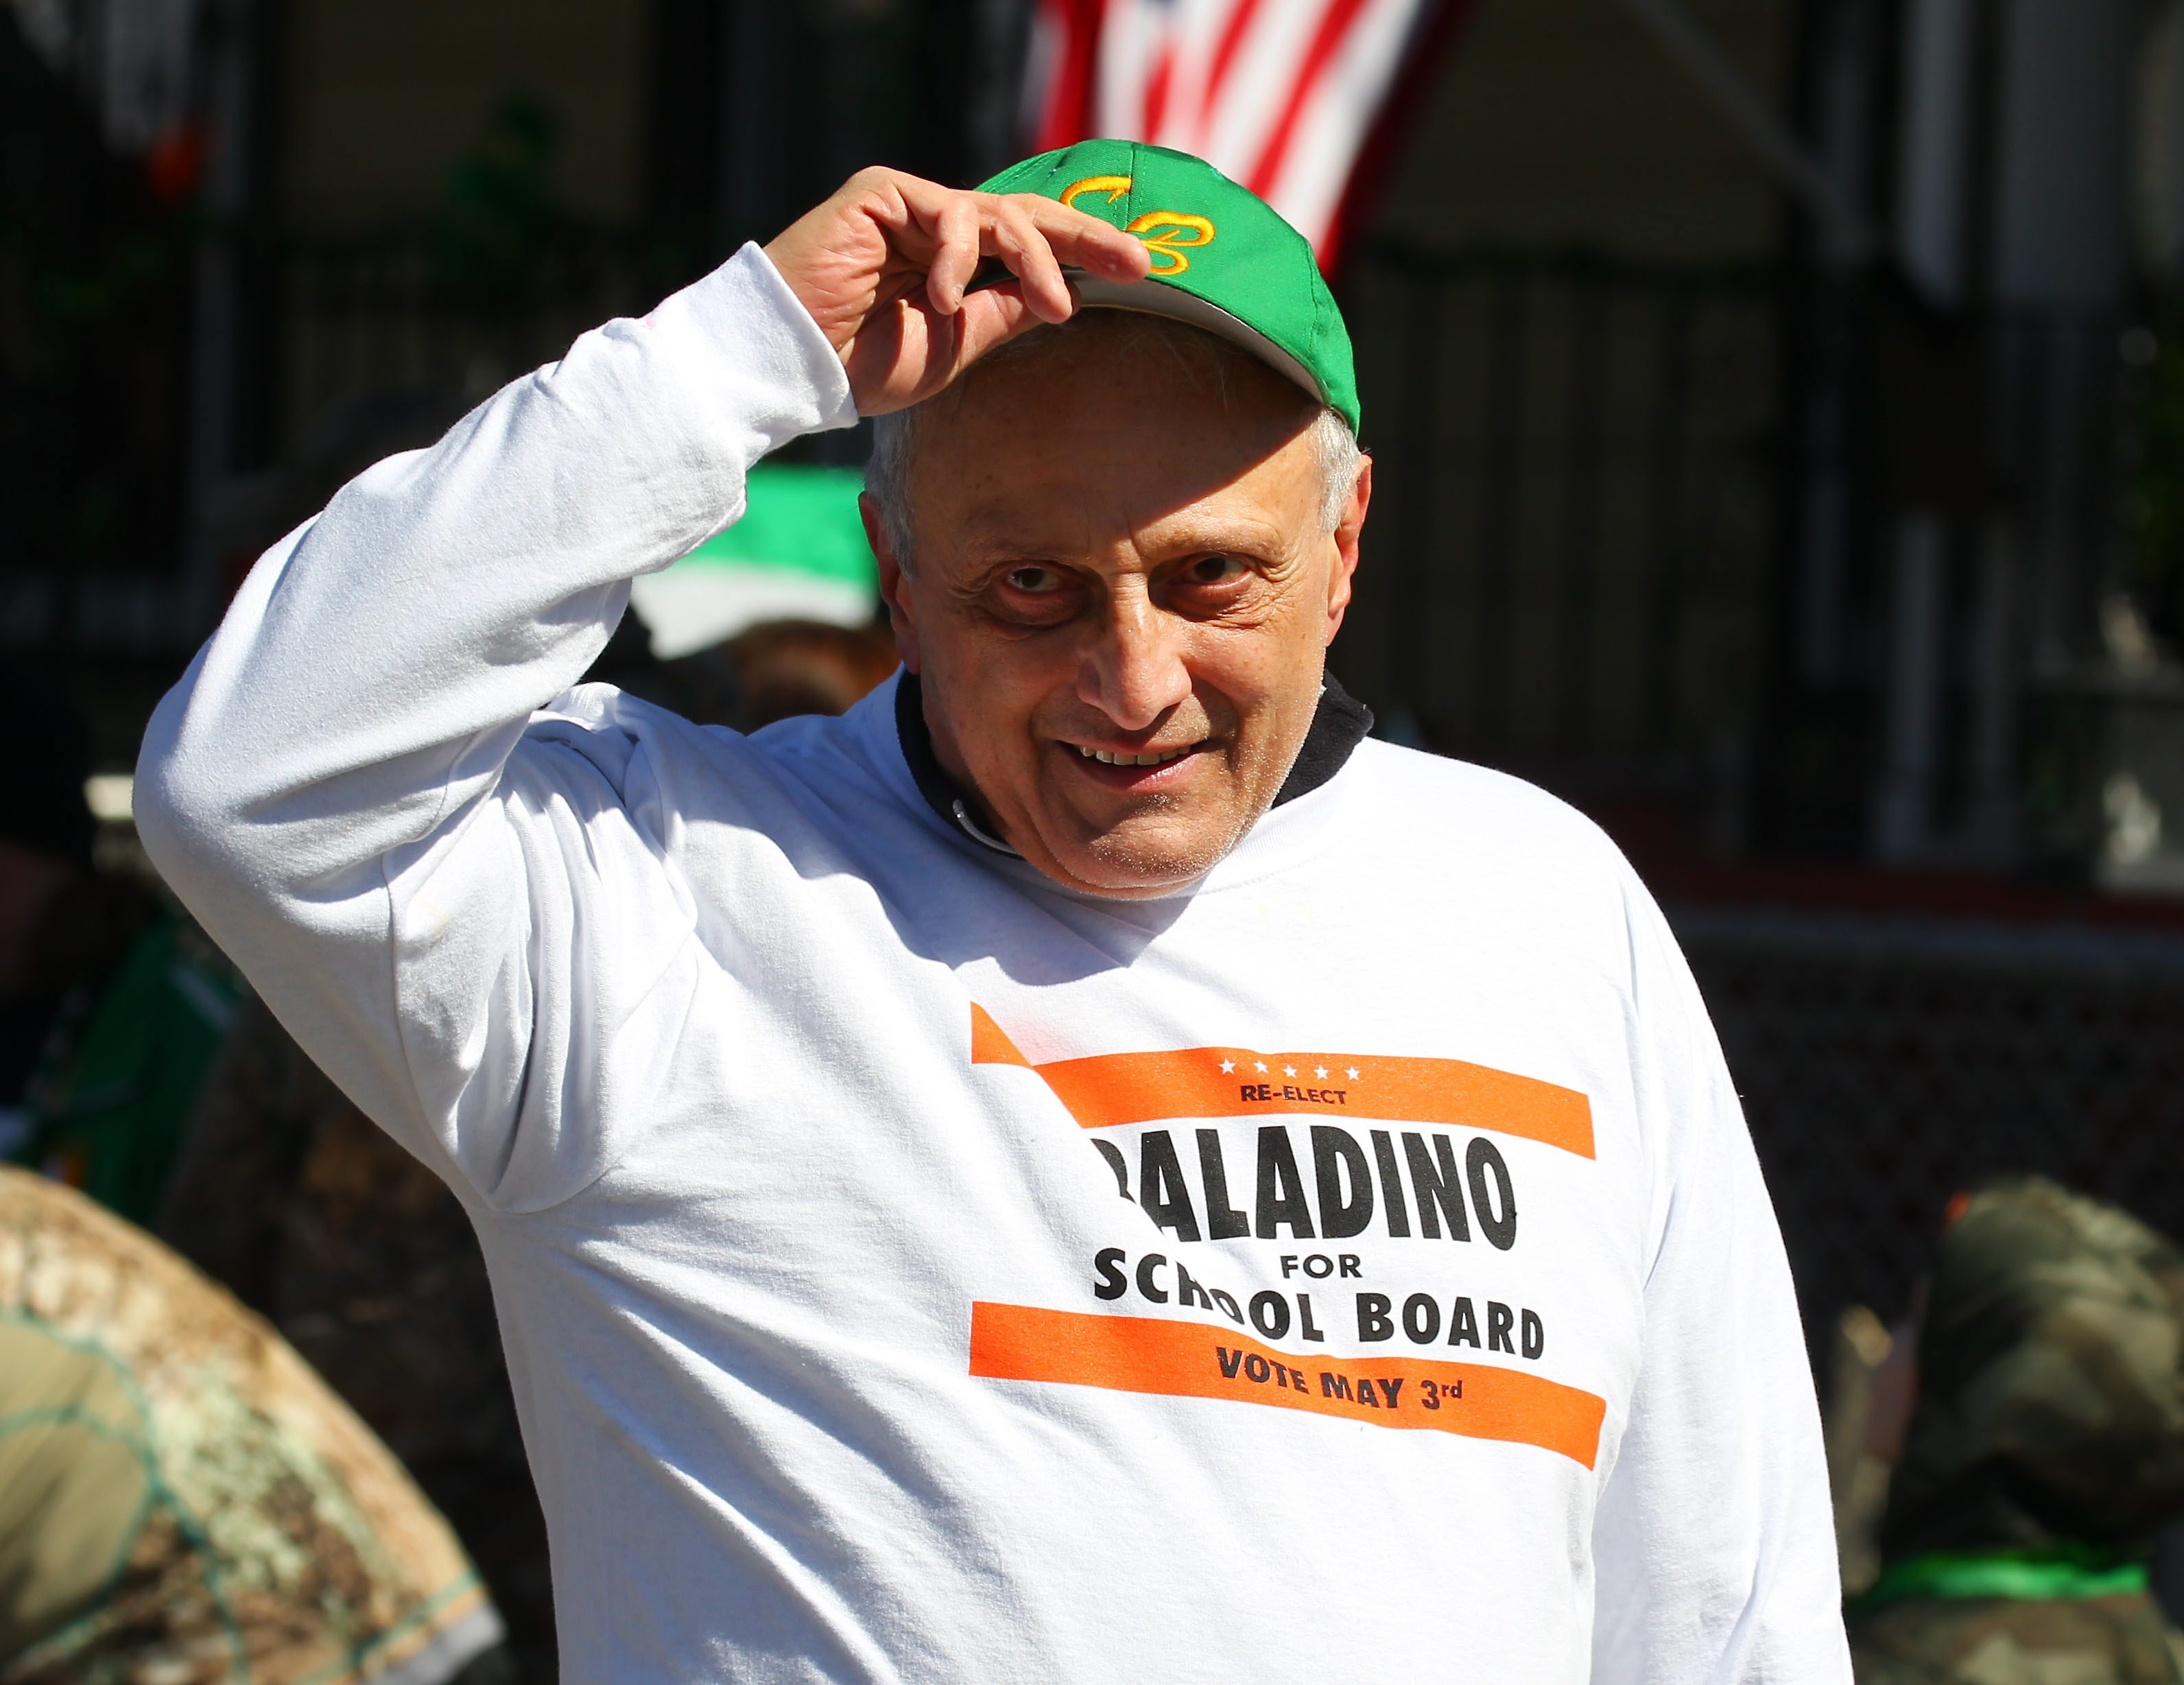 Local leaders are calling for Carl Paladino to resign or be removed from the Buffalo School Board. (Mark Mulville/Buffalo News)